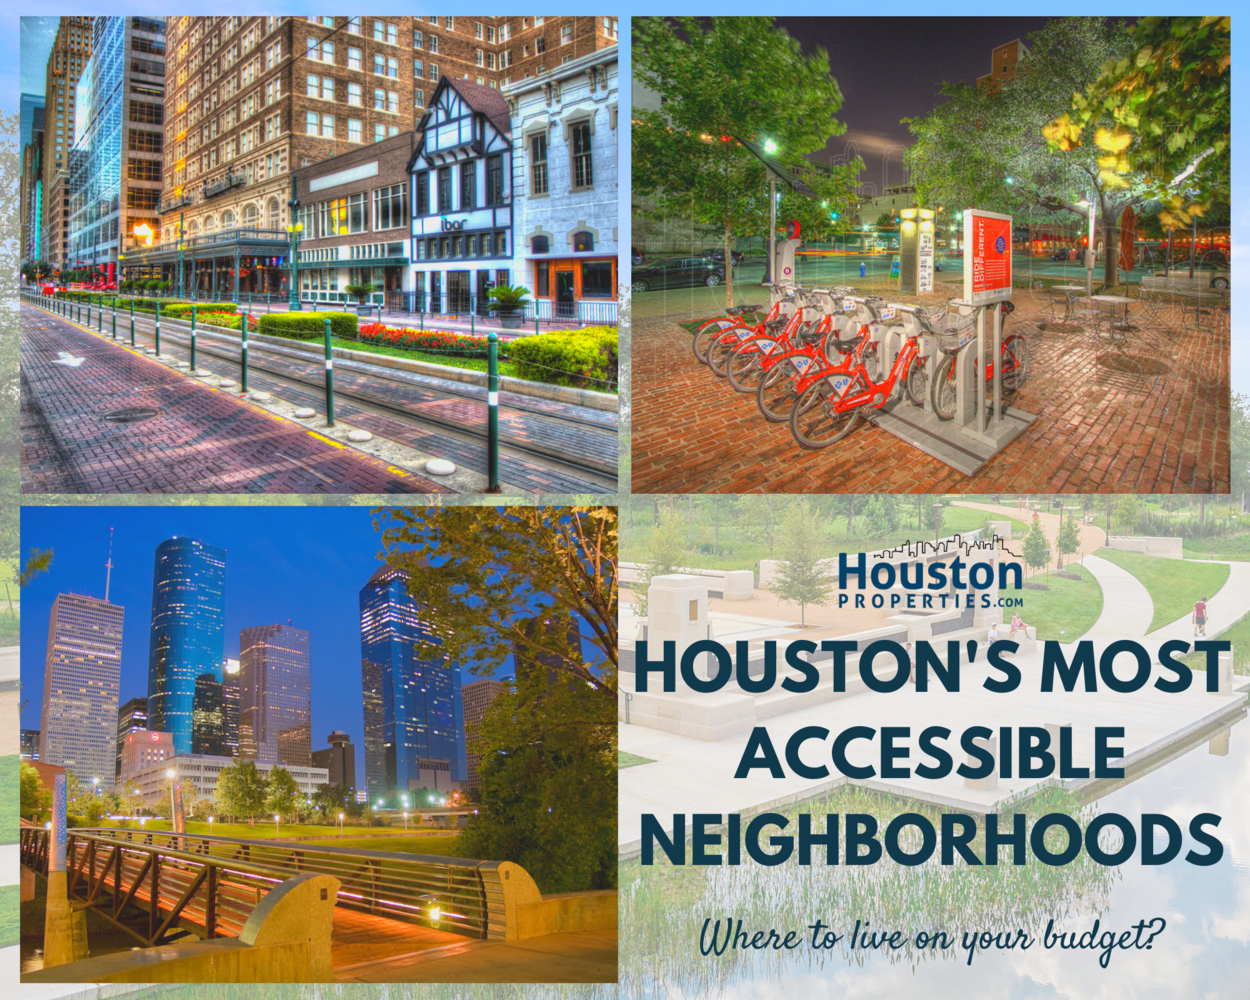 11 Of The Best Houston Neighborhoods In Accessibility & Walkability